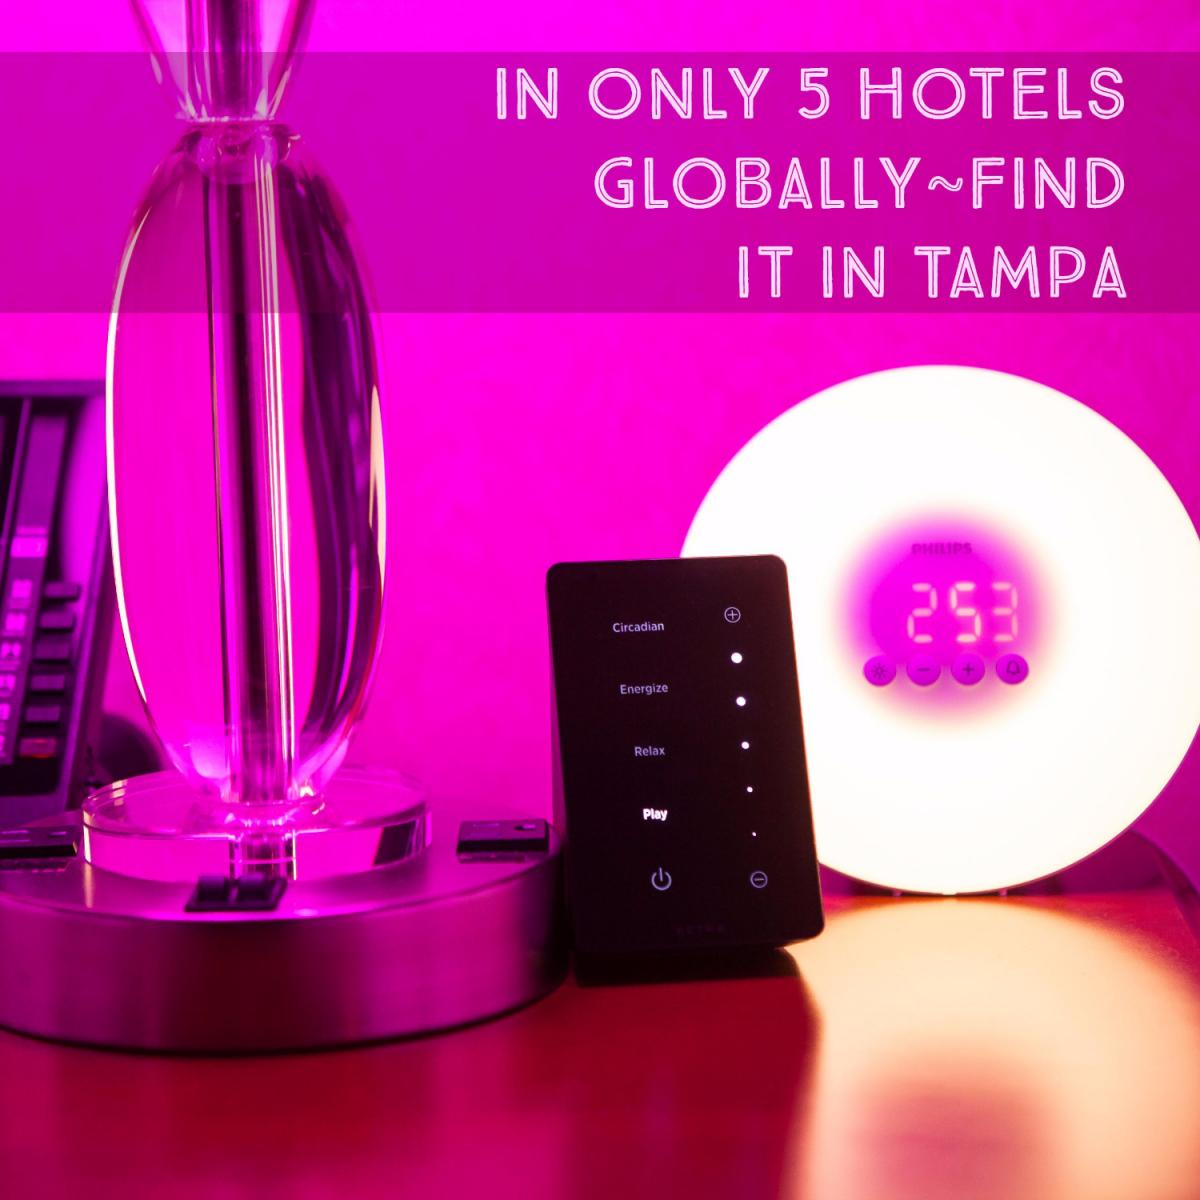 Experience the Best of Boutique at this Luxury Hotel in Tampa